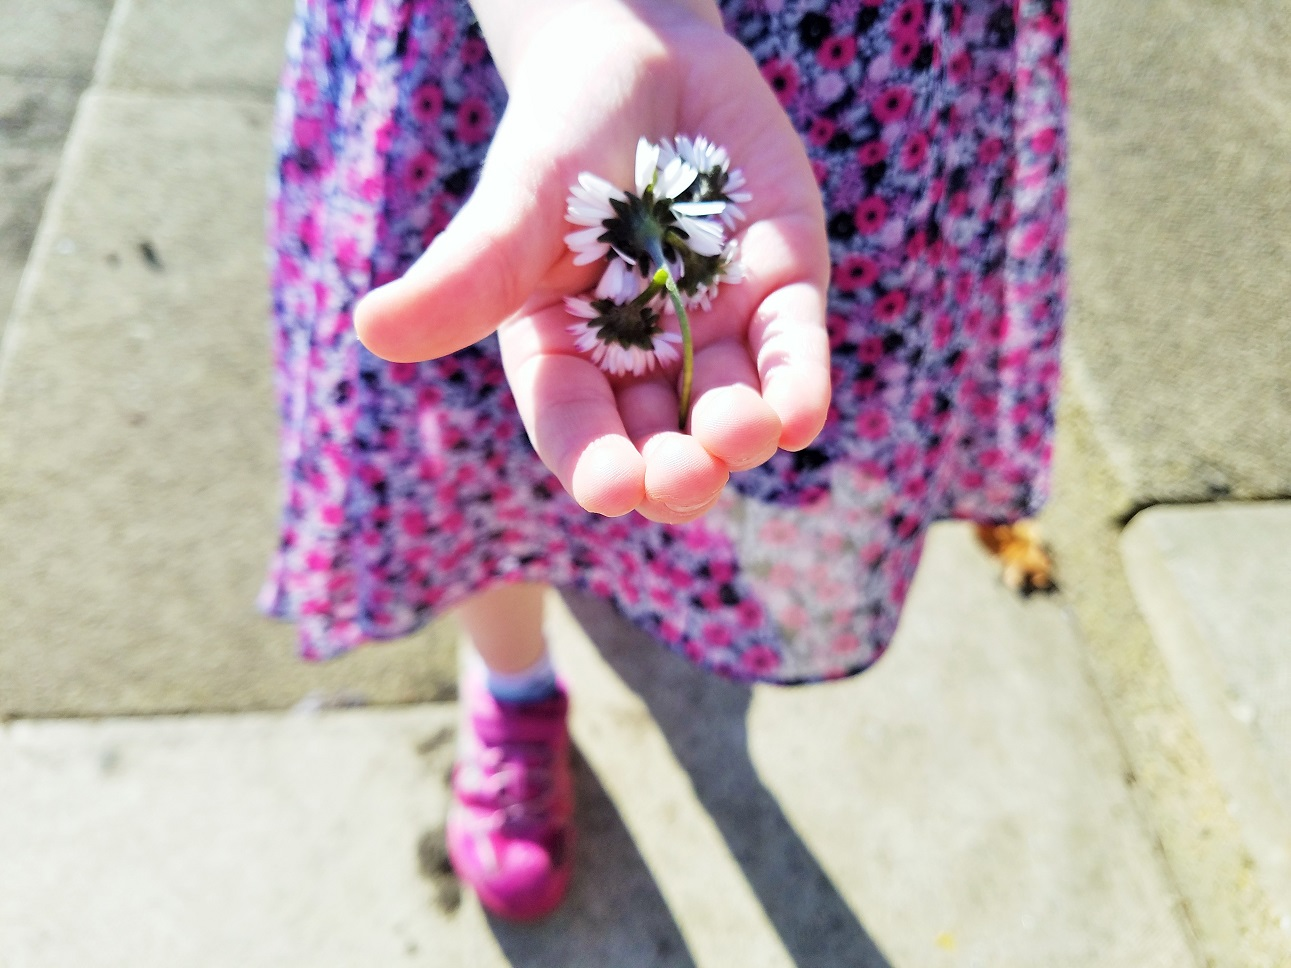 spur of the moment games for bored children child holding daisies